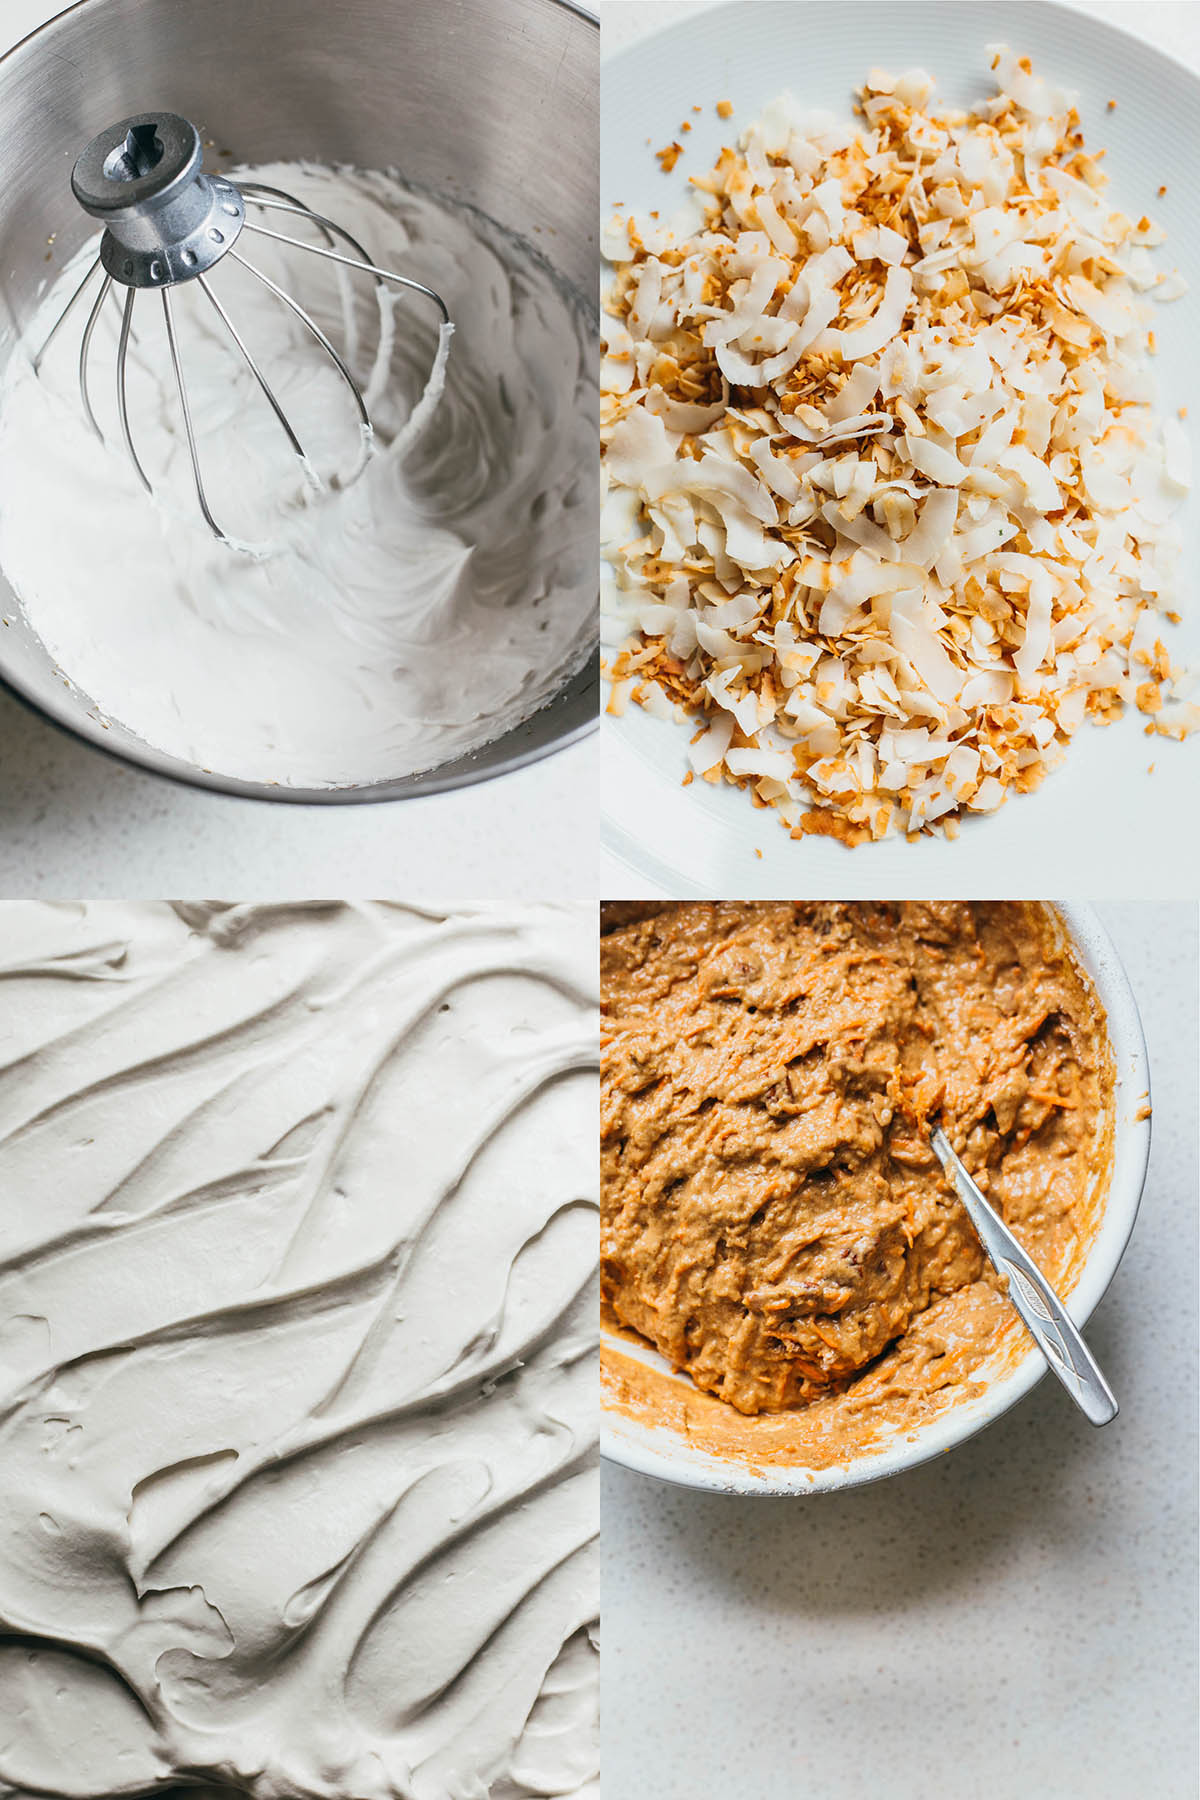 Four images, clockwise from top left: whipped cream in a bowl, toasted coconut flakes, cake batter, and whipped cream close up.